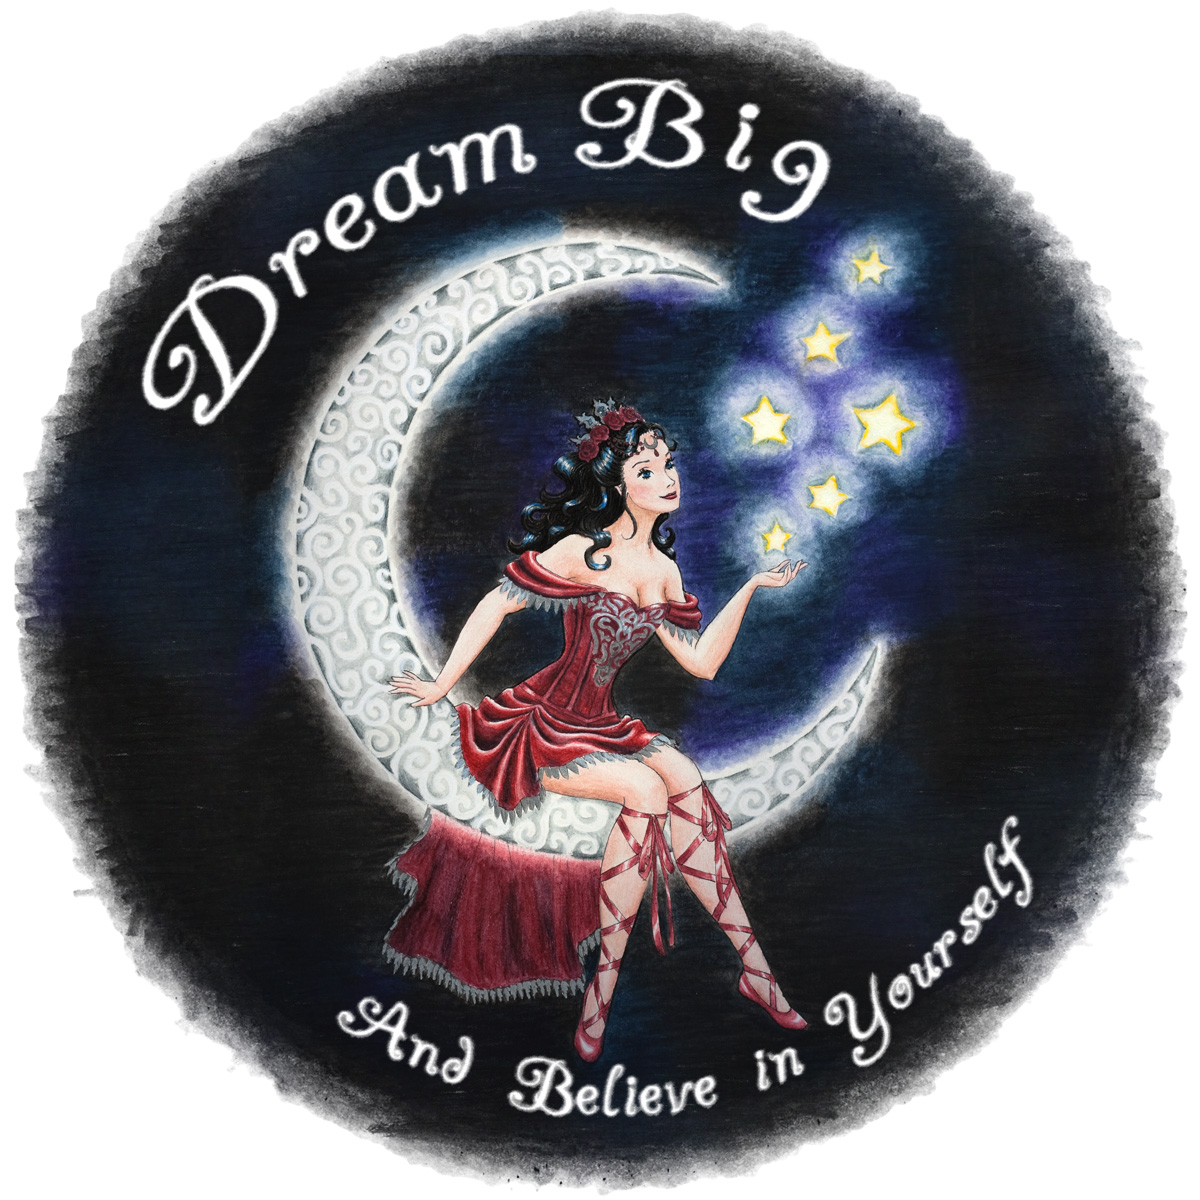 Dream Big... And believe in yourself